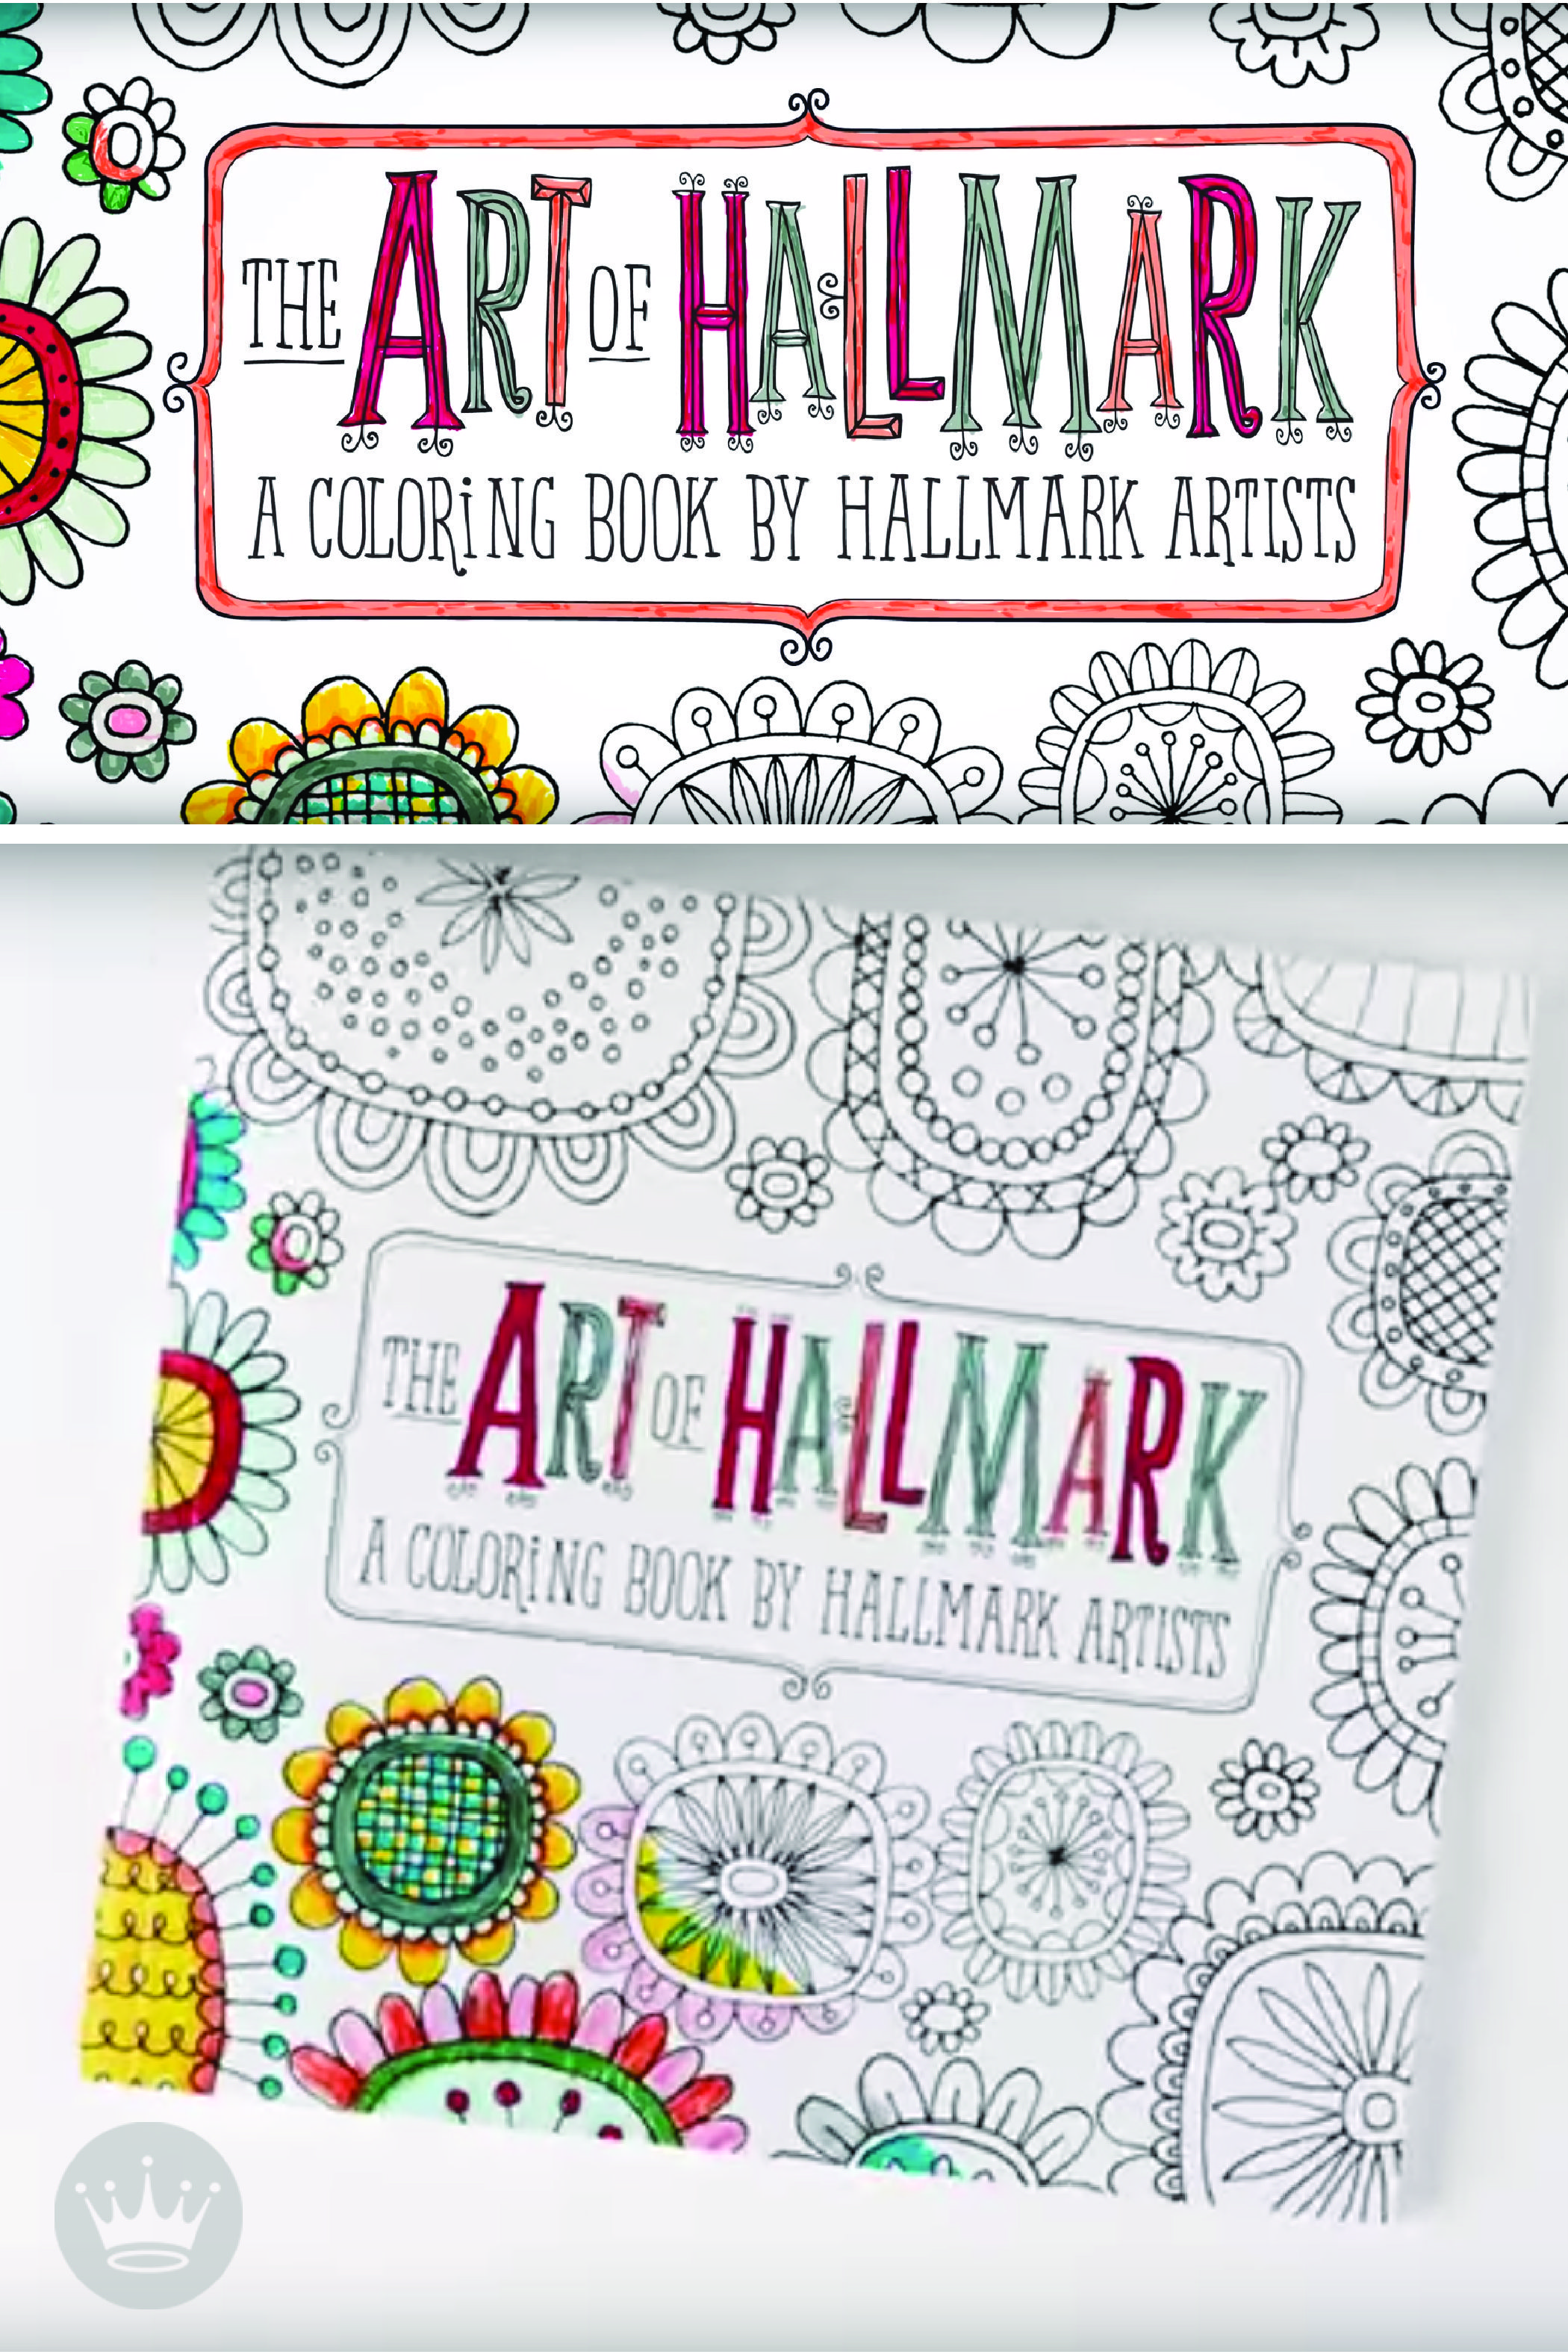 Hallmark Artists Intricate Line Drawings Help You Bring These Adult Coloring Books To Life With